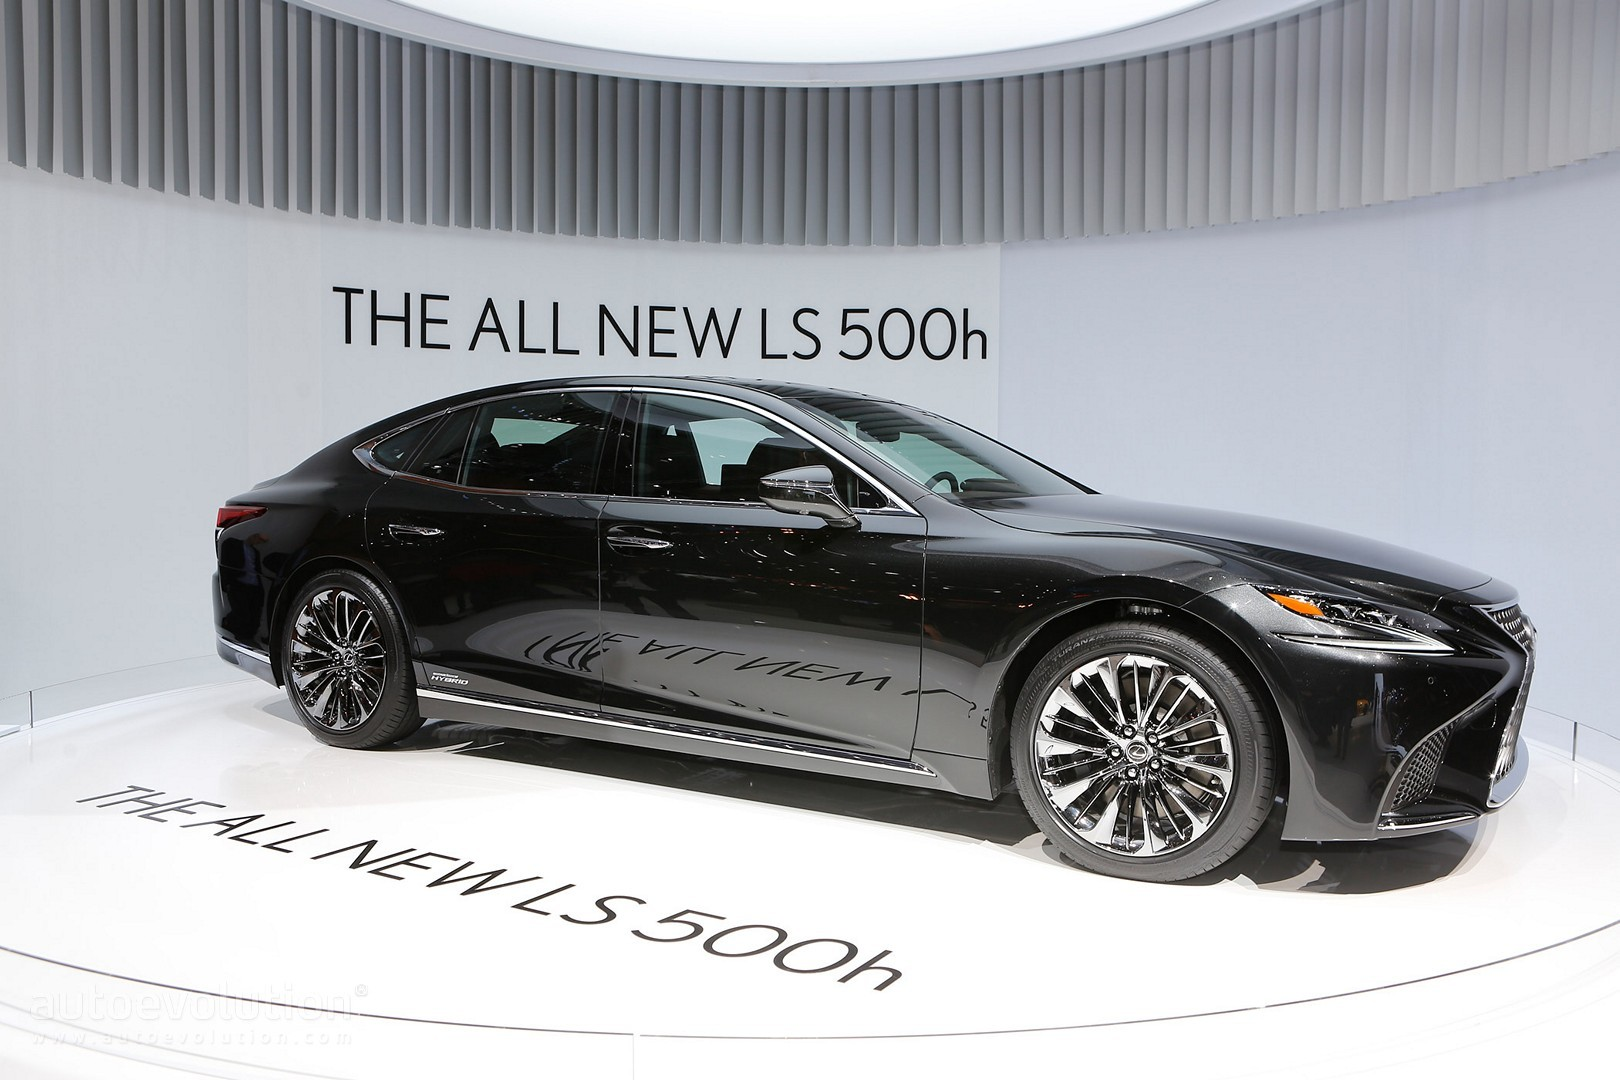 https://s1.cdn.autoevolution.com/images/news/gallery/the-all-new-2018-lexus-ls-500h-gets-revealed-in-geneva_3.jpg